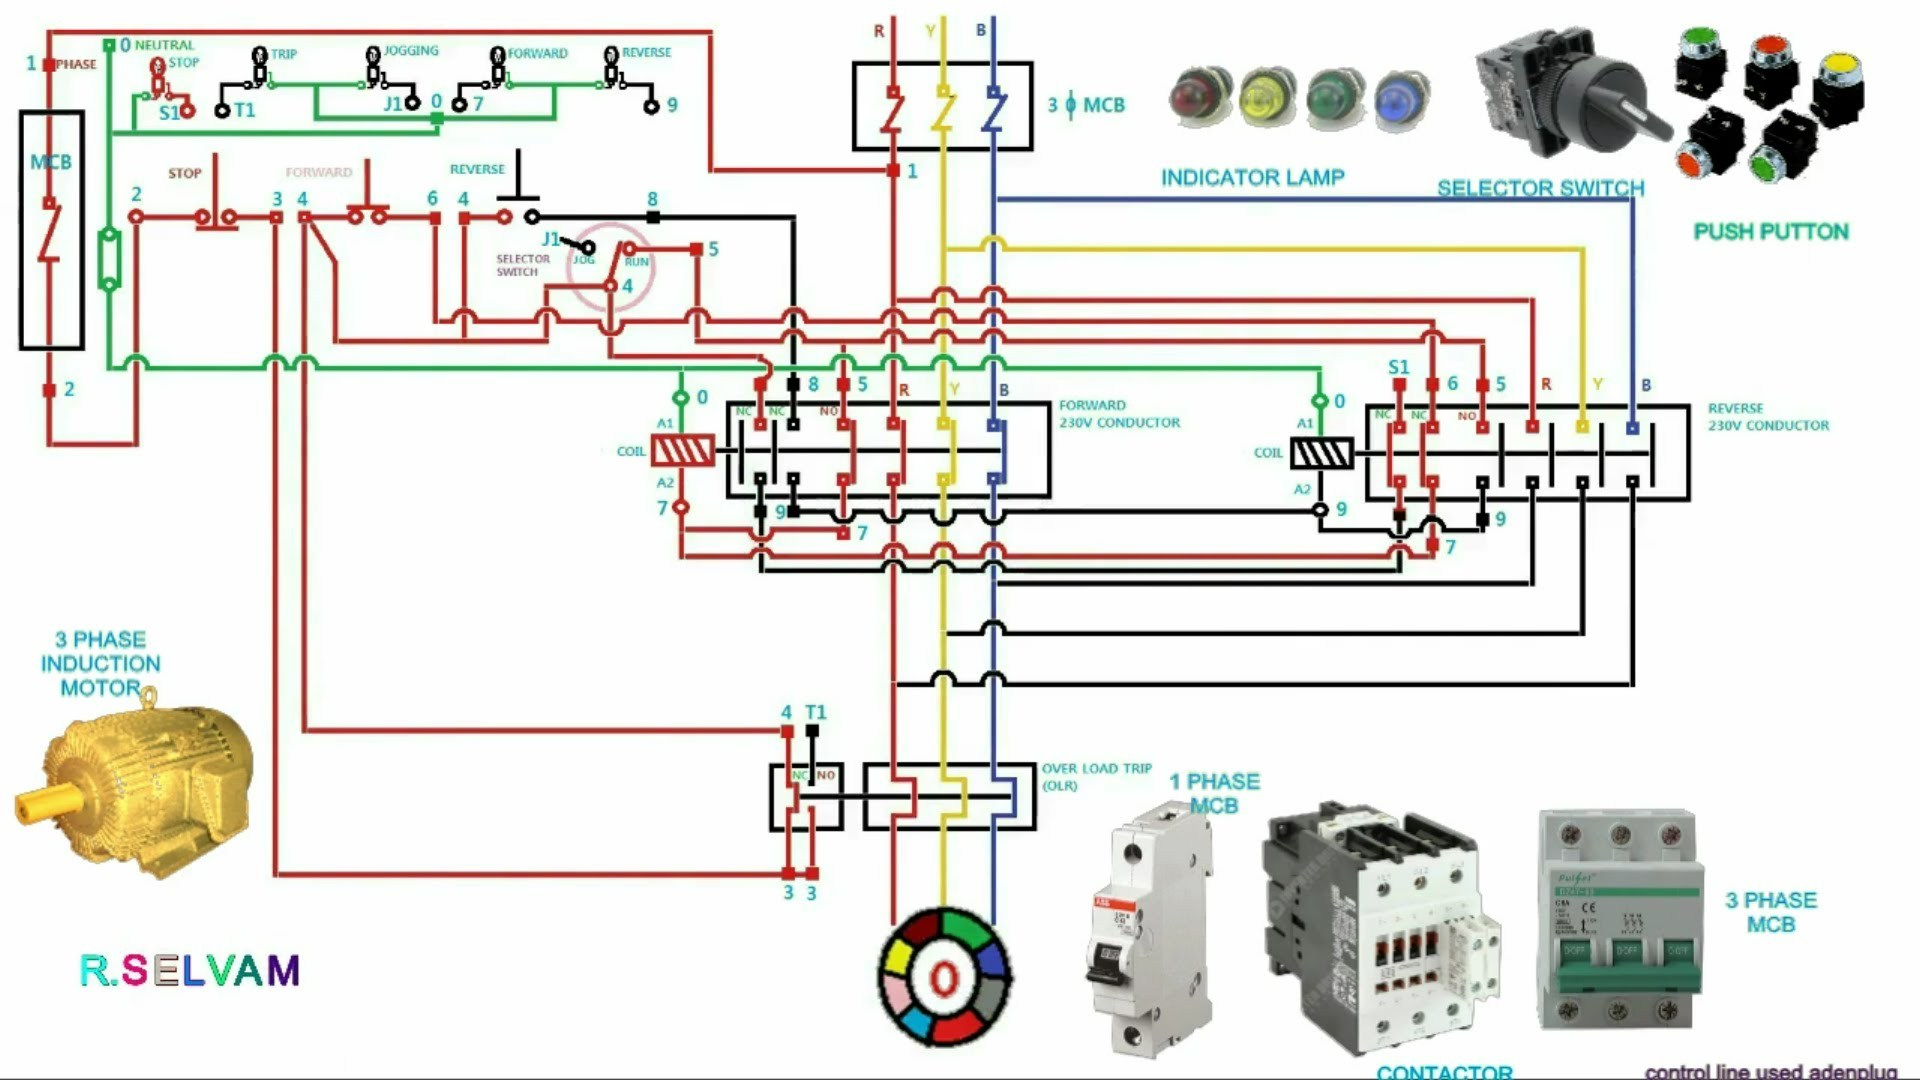 3 Phase Surge Protector Wiring Diagram Gallery